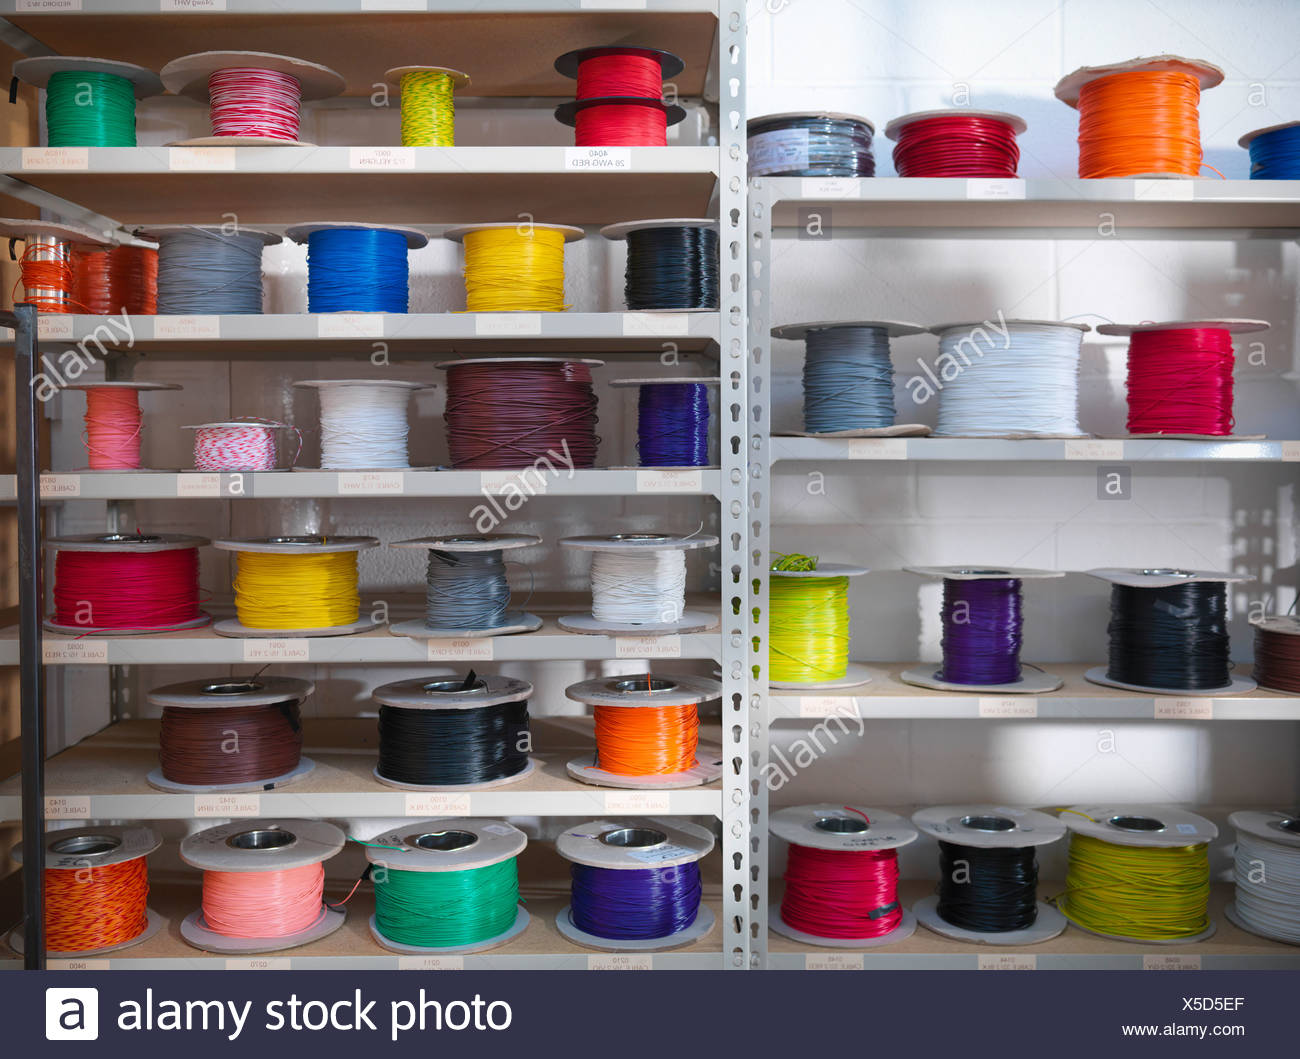 Store Room Stock Photos & Store Room Stock Images - Alamy